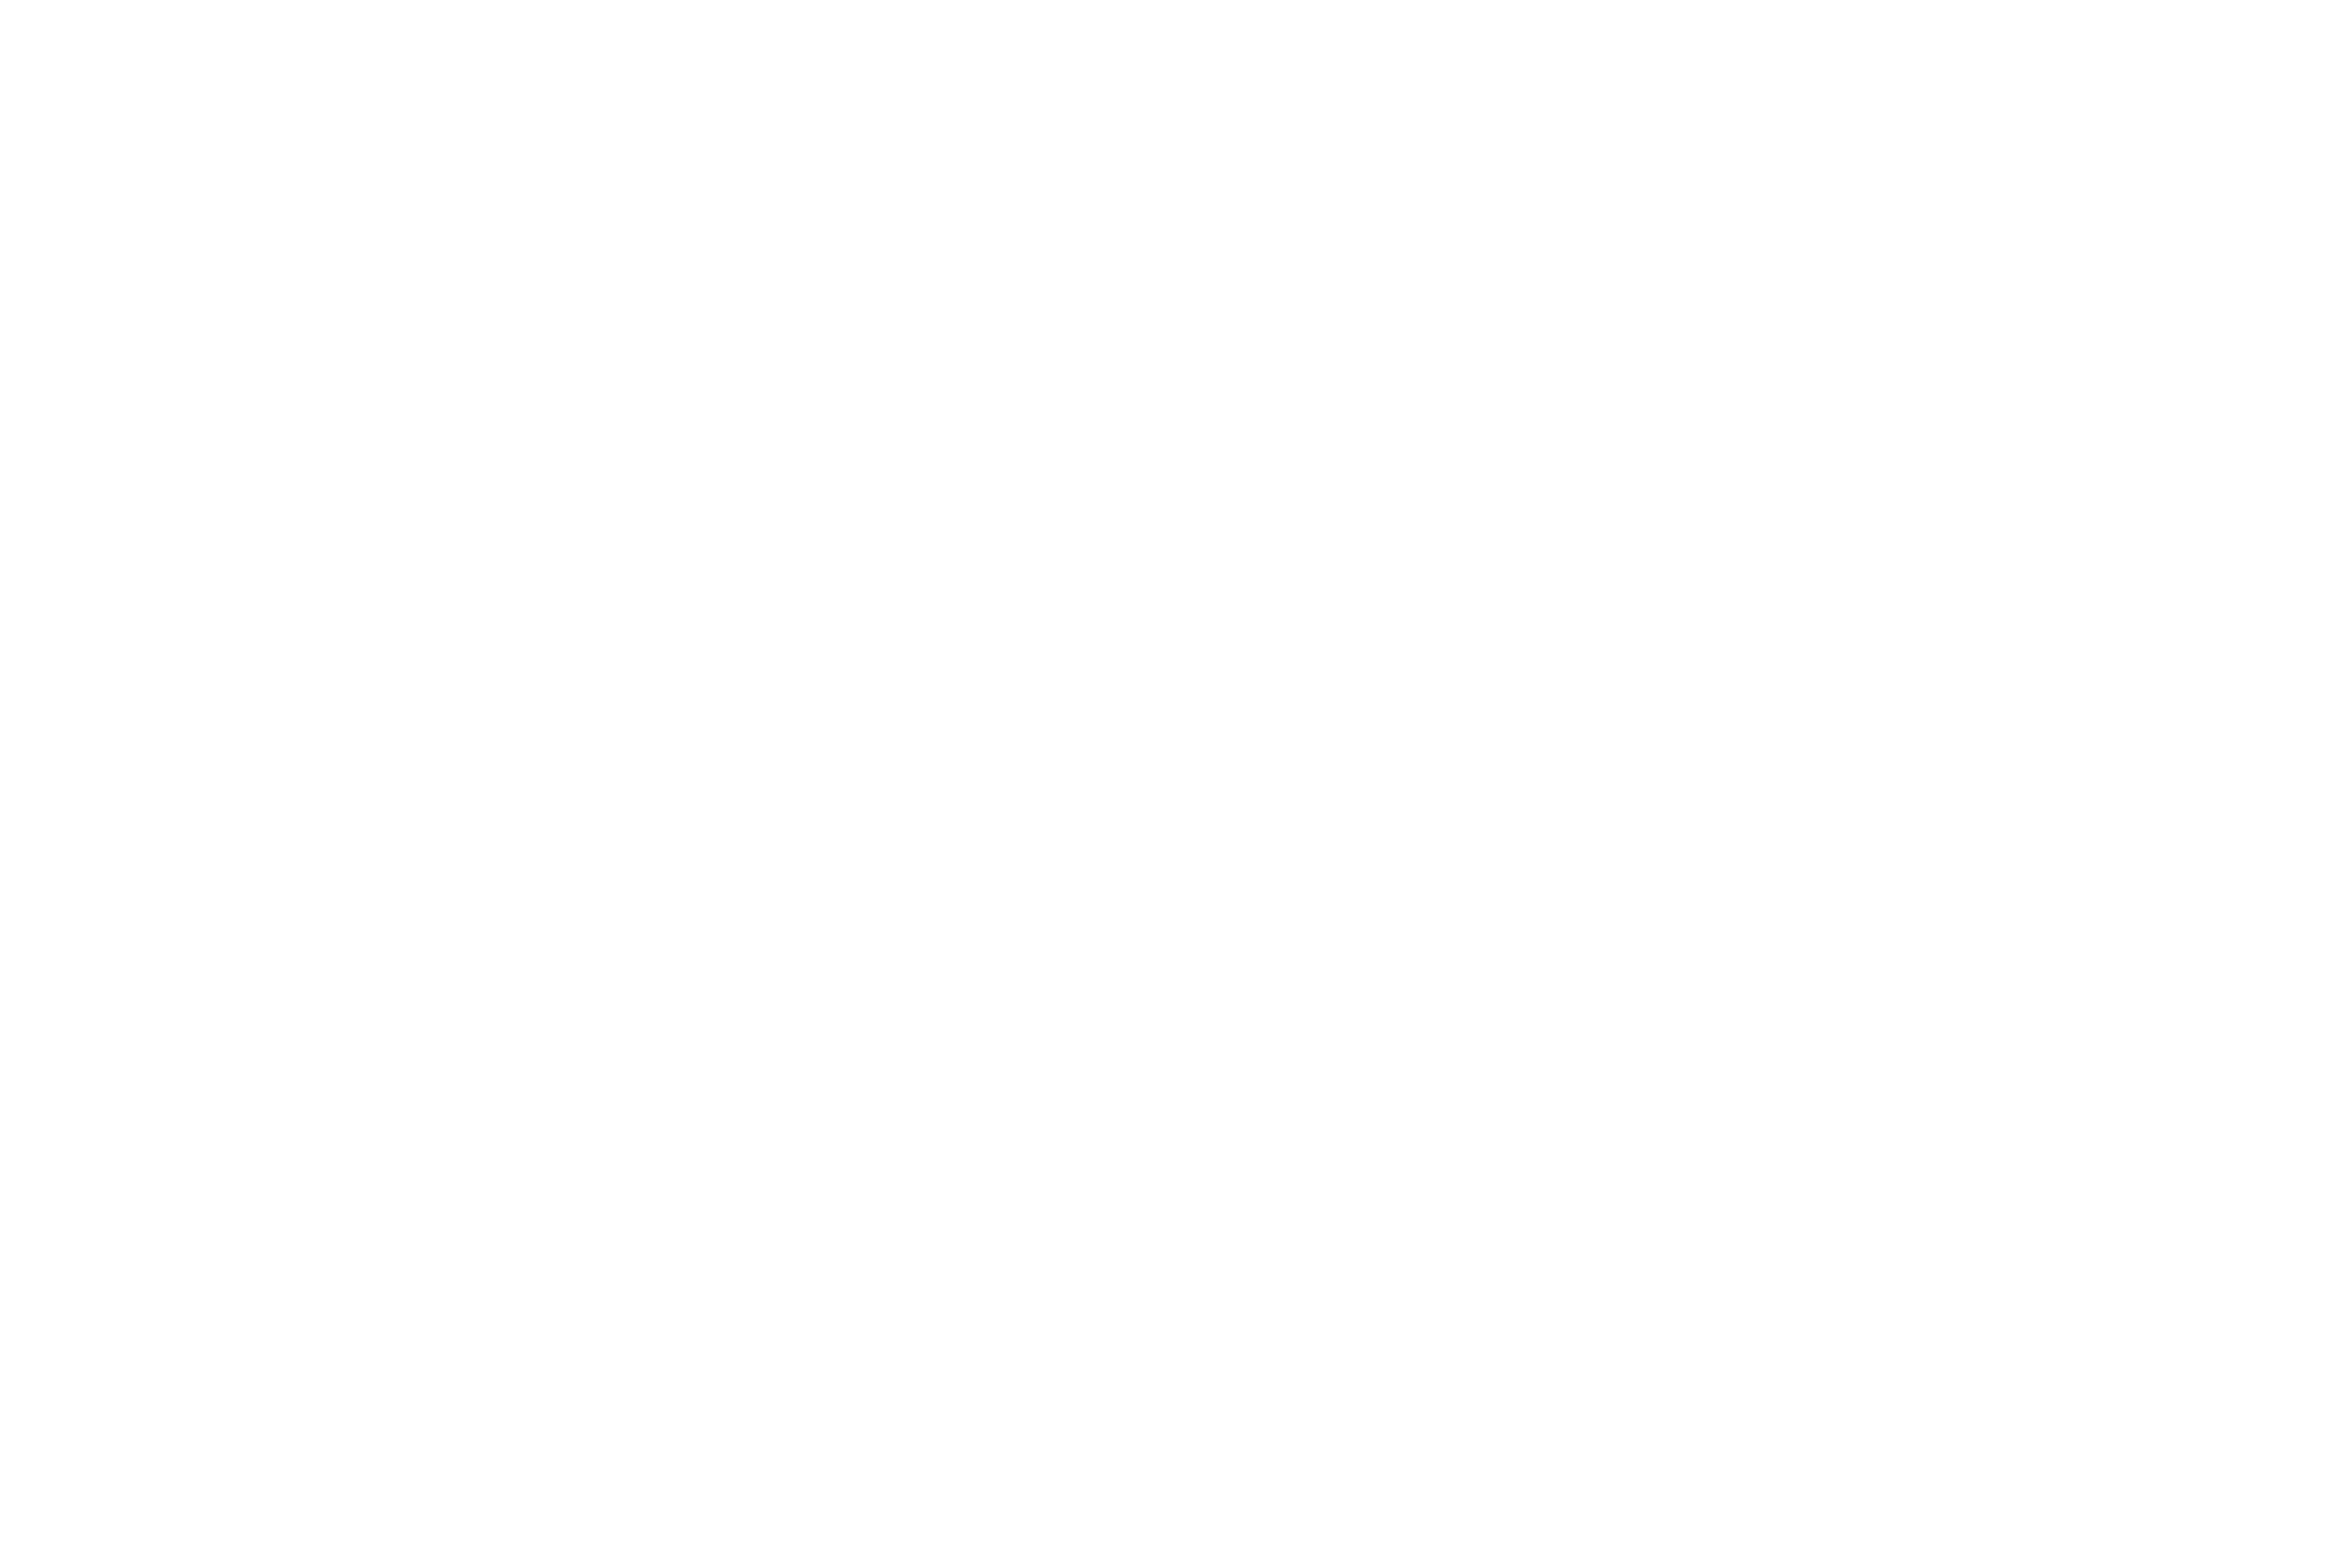 stoked surf adventures surf courses surf camps surf instructor